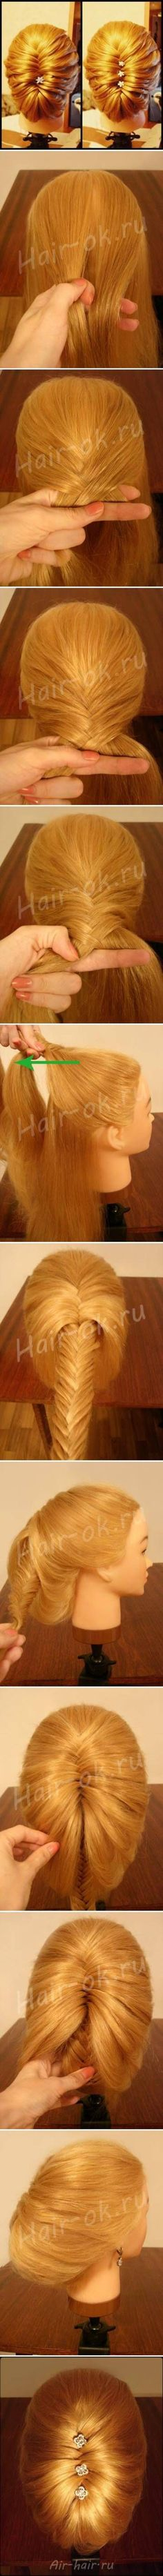 Lovely Braided Updo That's Perfect 4 A Wedding